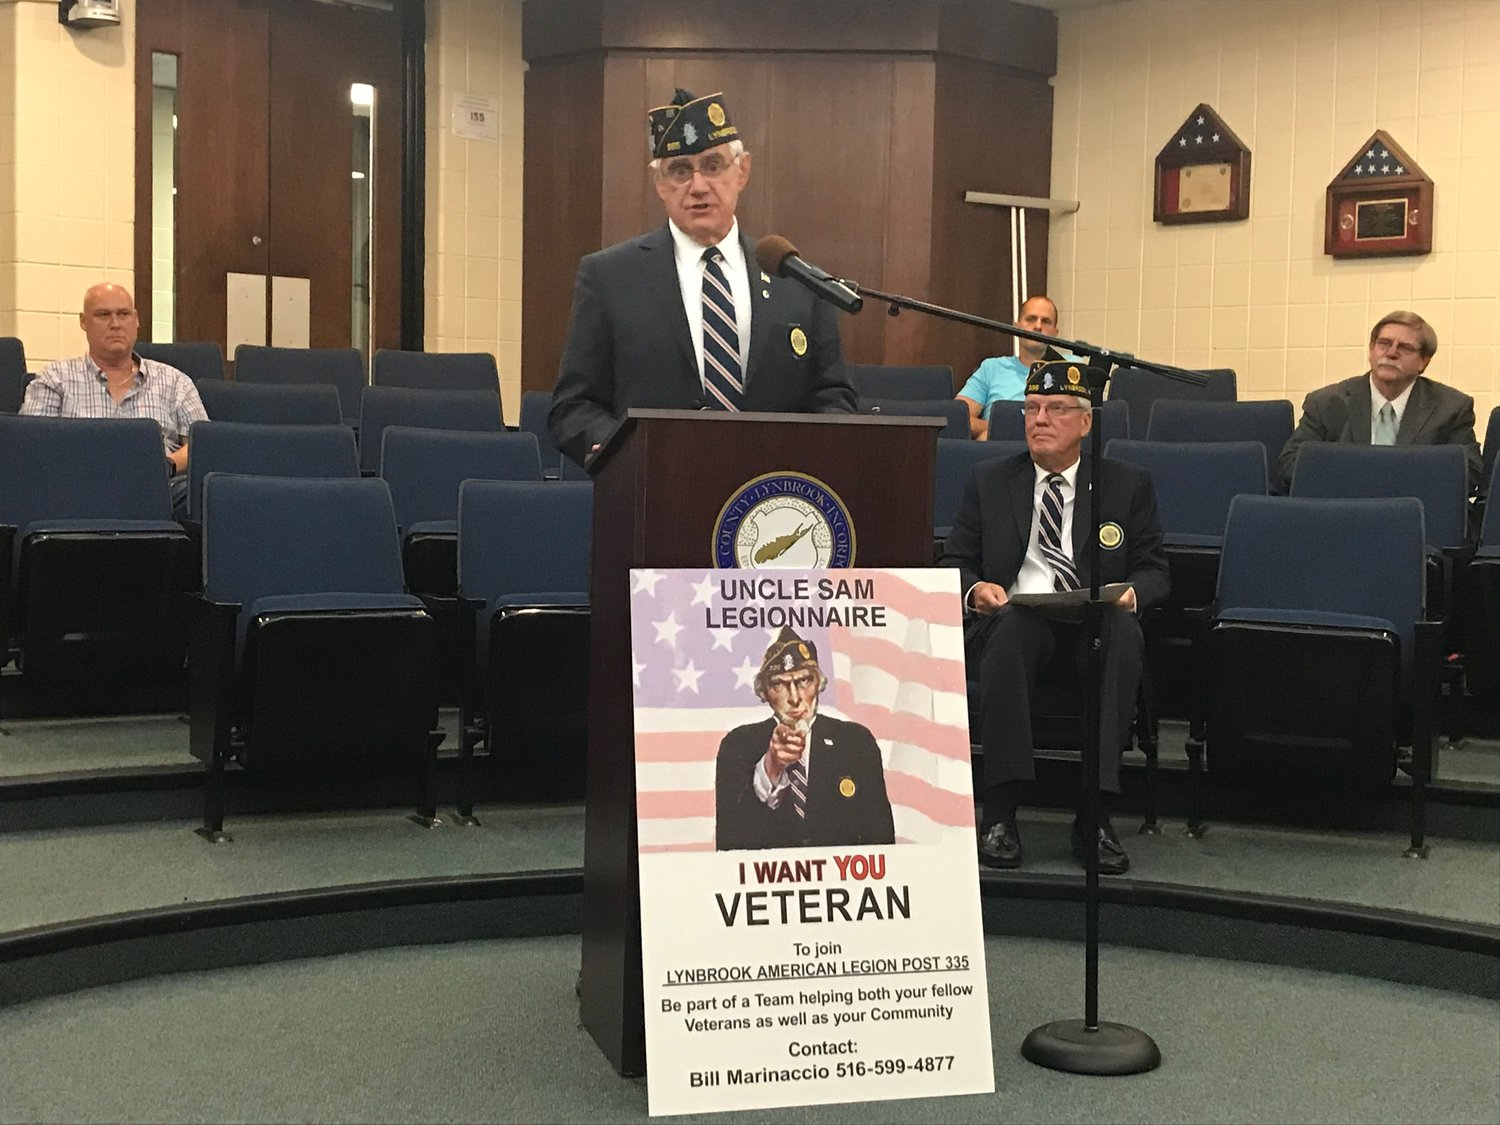 American Legion Post 335 Adjucant Bill Marinaccio, at lectern, and Steve Grogan are spearheading a movement to recruit new members during the post's 100th anniversary.